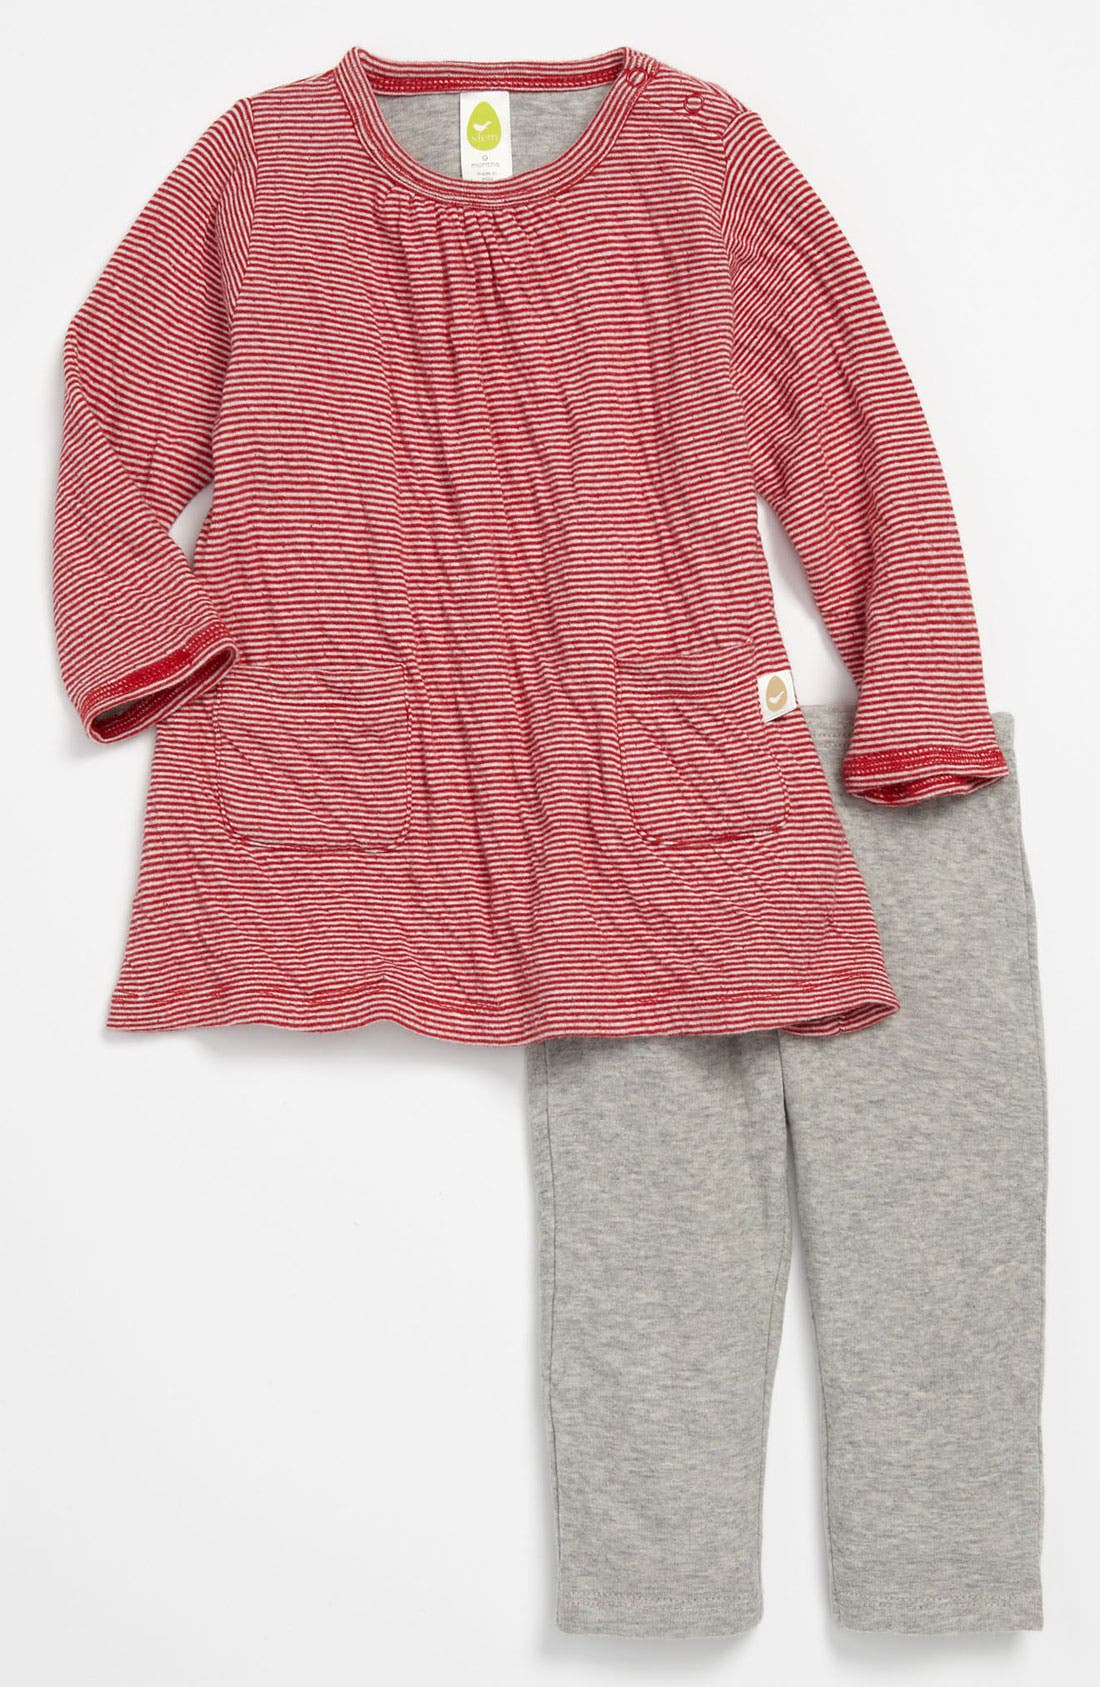 Main Image - Stem Baby Double Knit Organic Cotton Dress & Leggings (Infant)